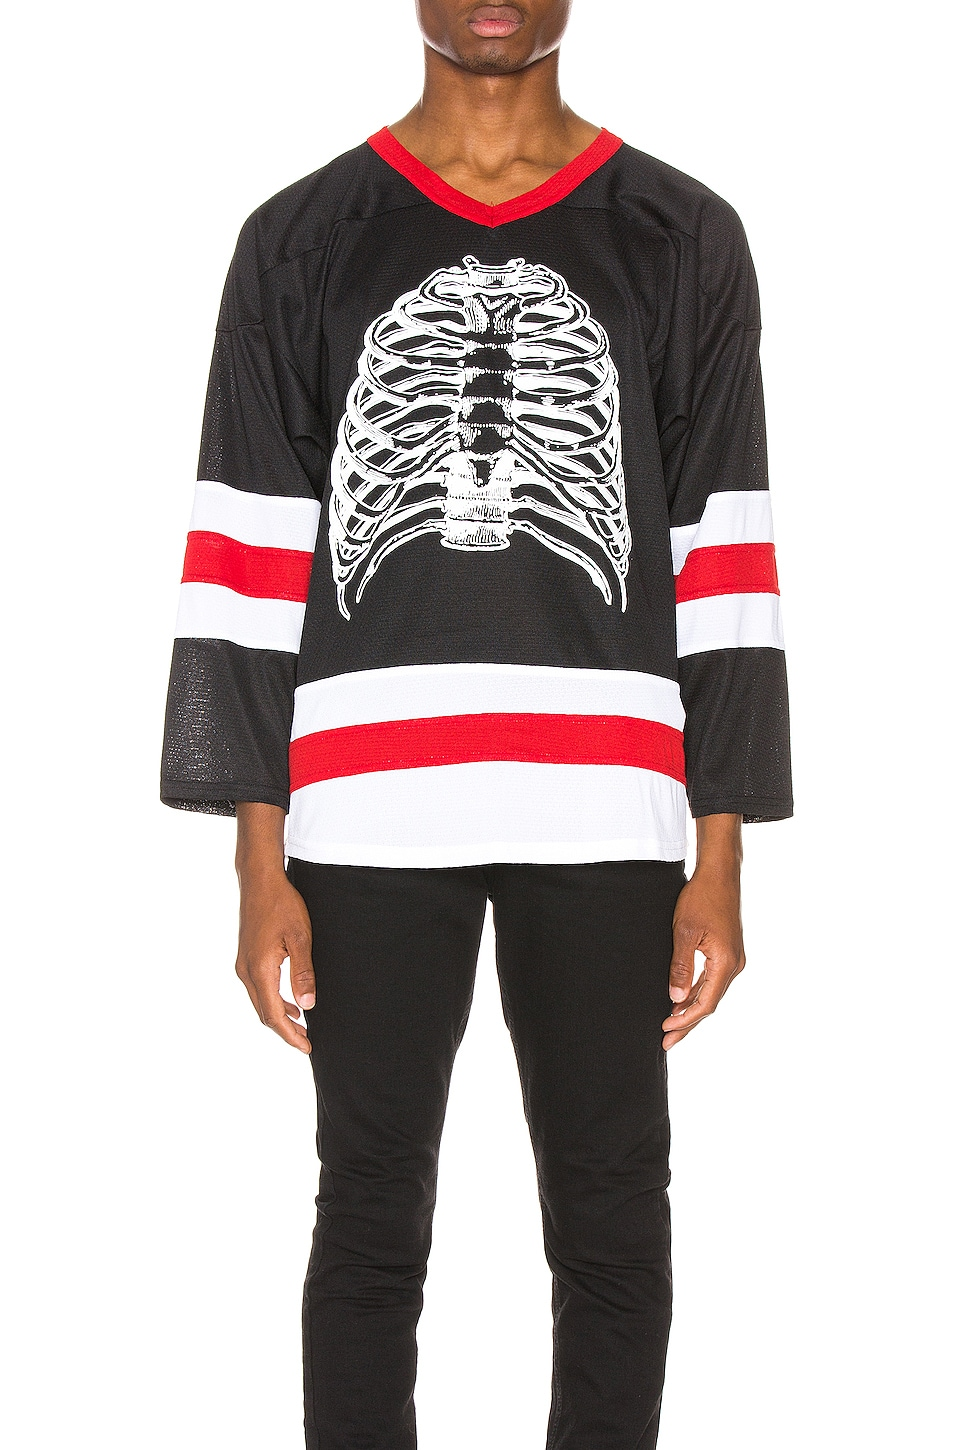 Pleasures Ribs Hockey Jersey in Black